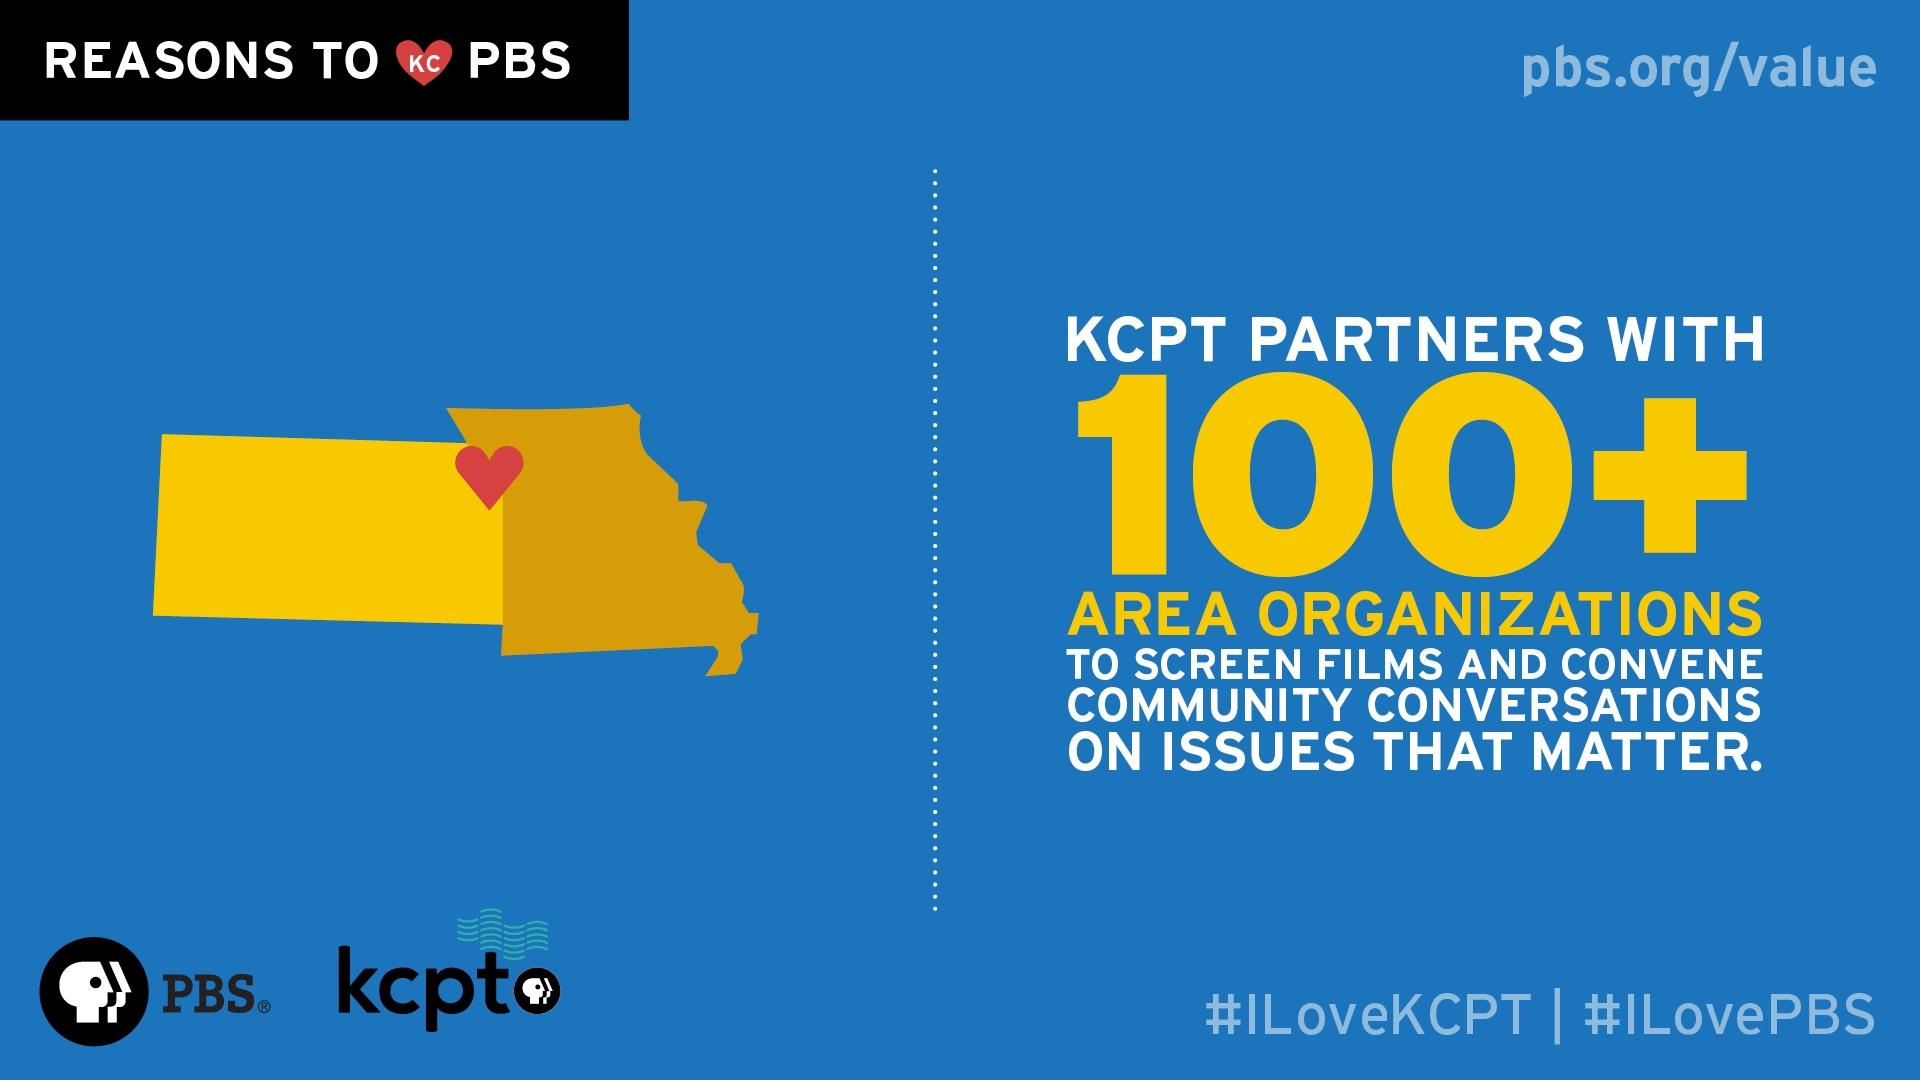 KCPT partners with 100+ area organizations to screen films and convene community conversations on issues that matter.